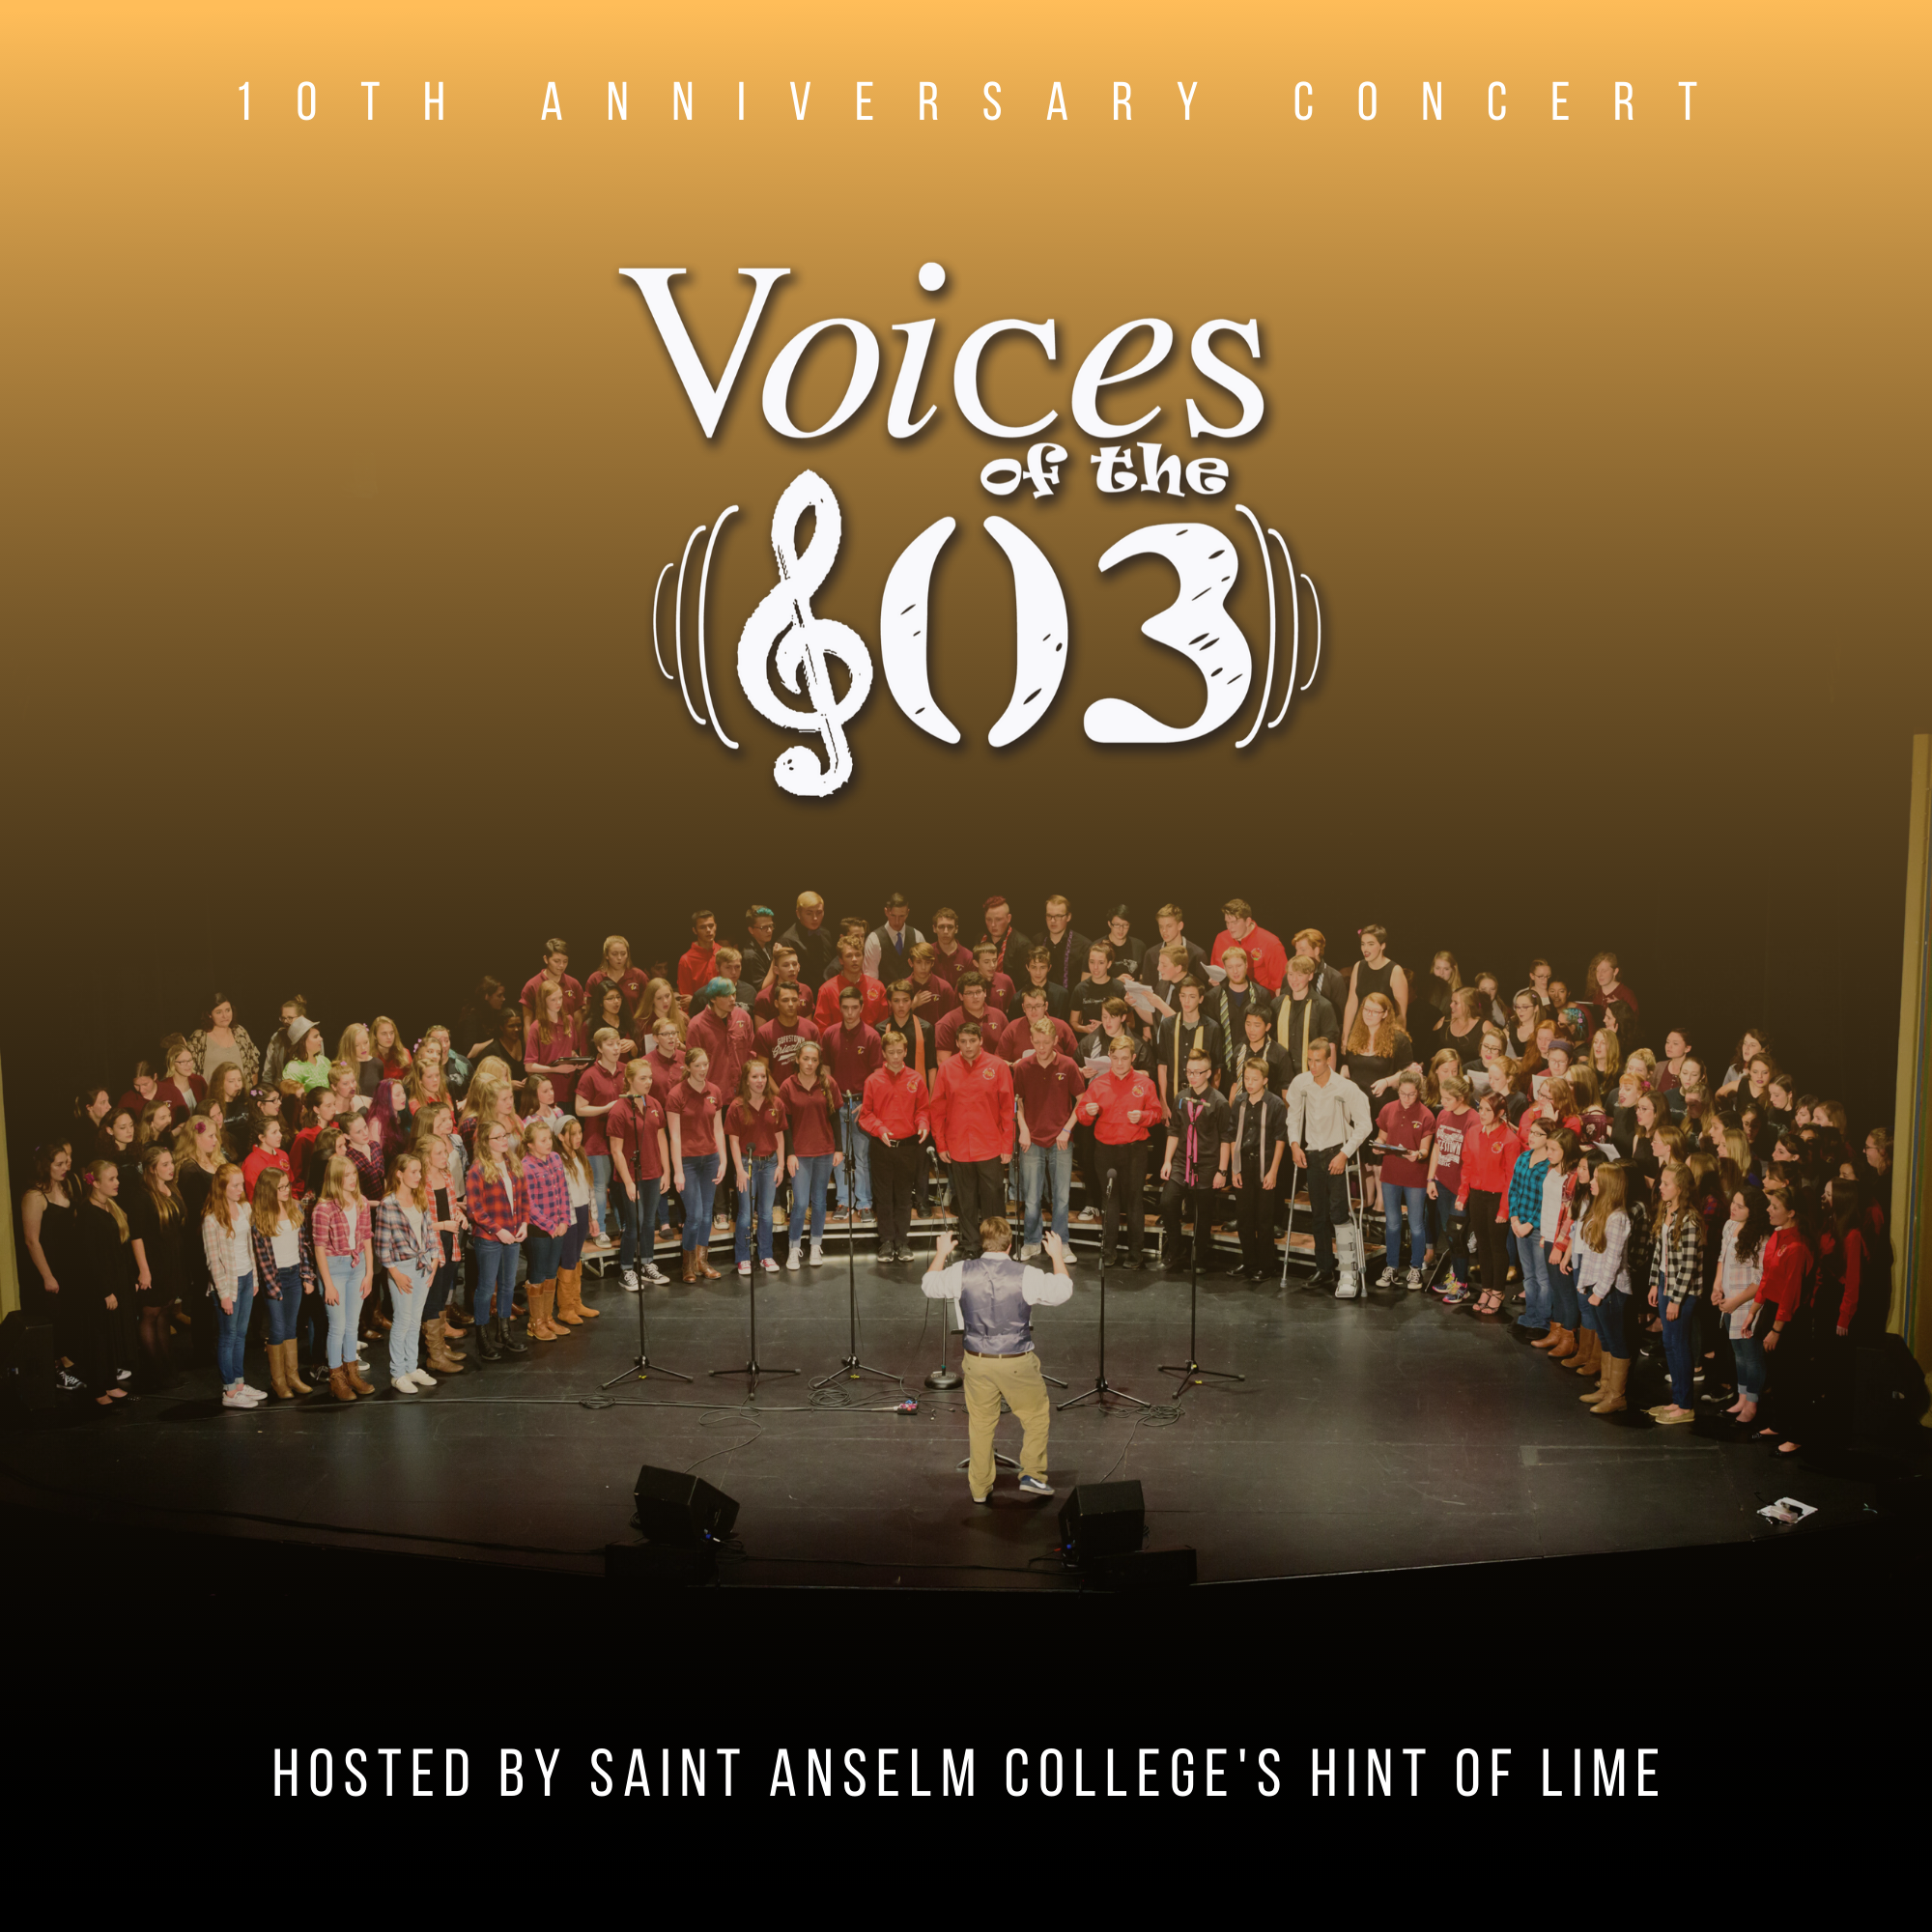 Voices of the 603